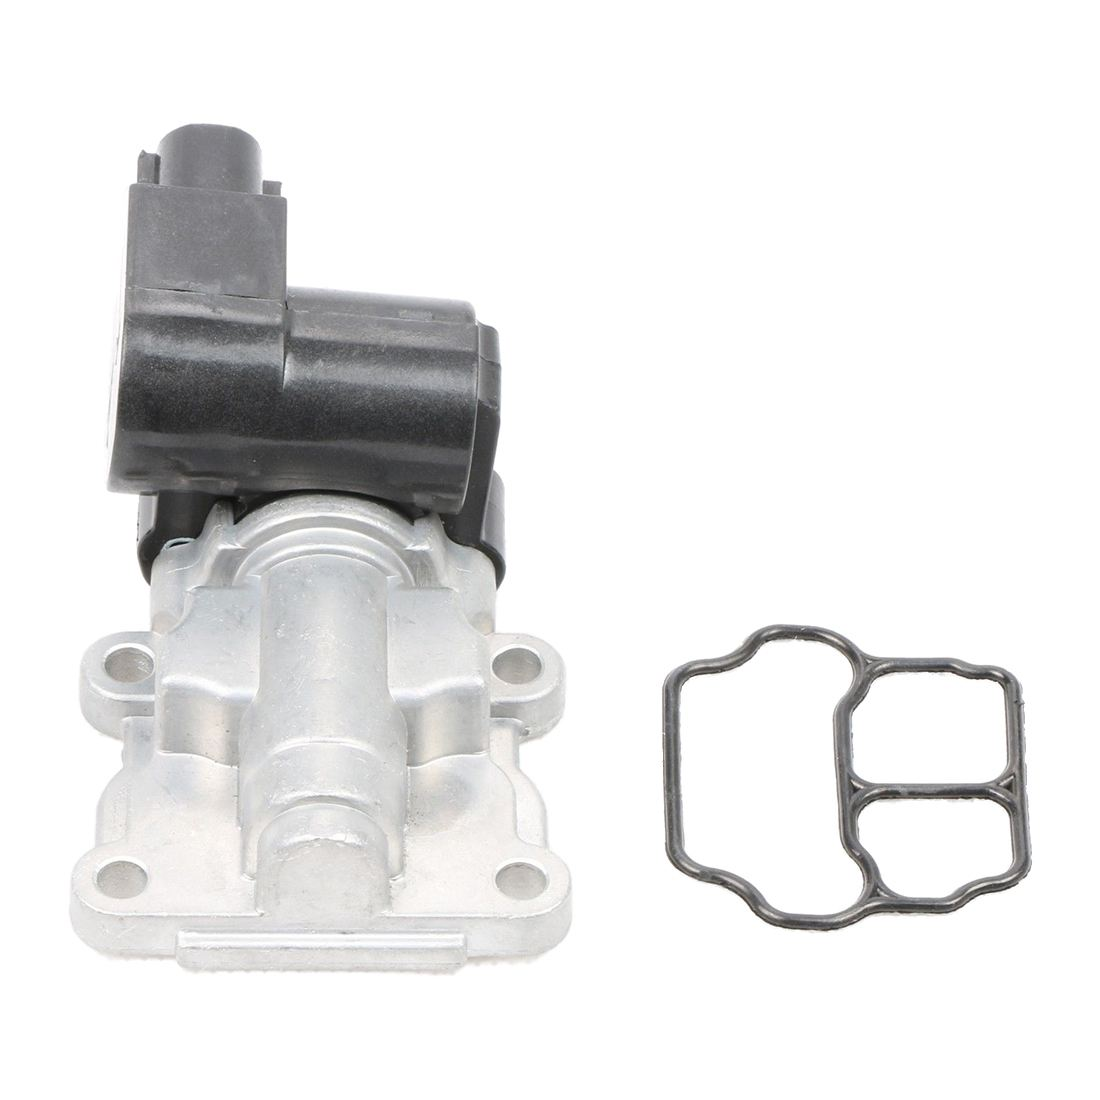 New Idle Air Control Valve / Motor IAC 98 - 01 Fits Prizm / Corolla 1.8L L4 car styling good quality idle air control valve motor for toyota corolla 22270 16090 2227016090